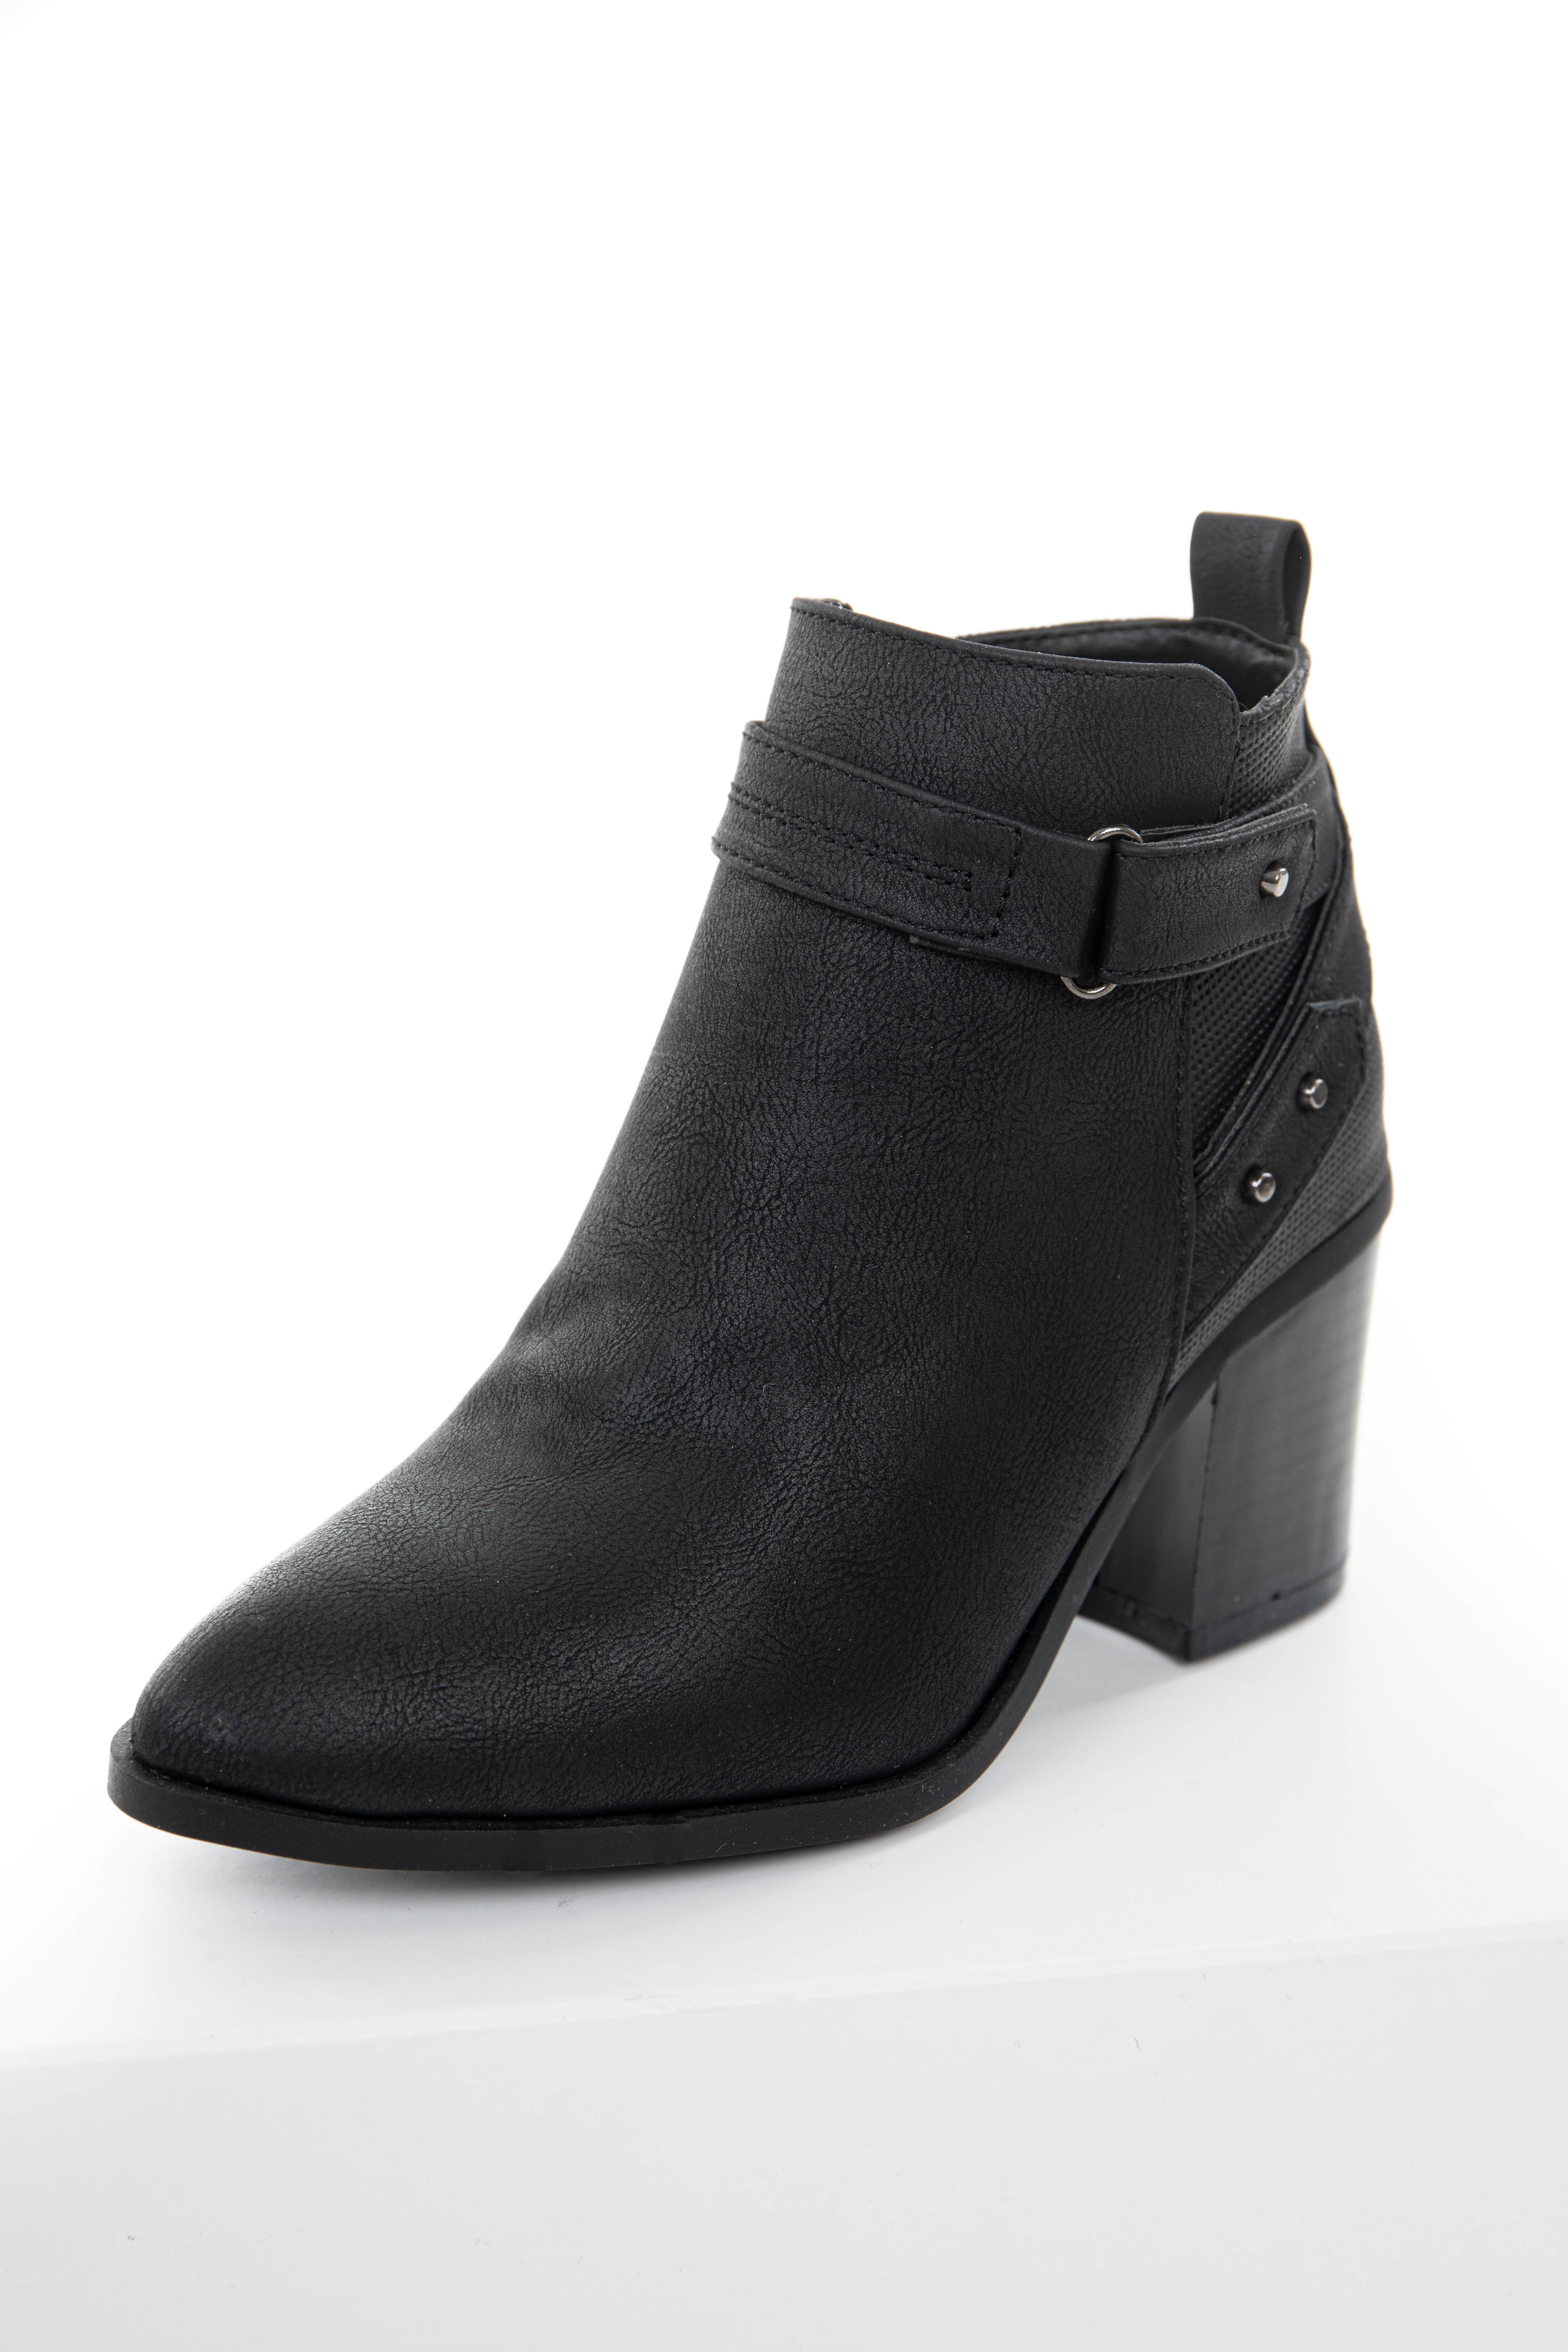 Charcoal Faux Leather High Heel Booties with Buckle Details